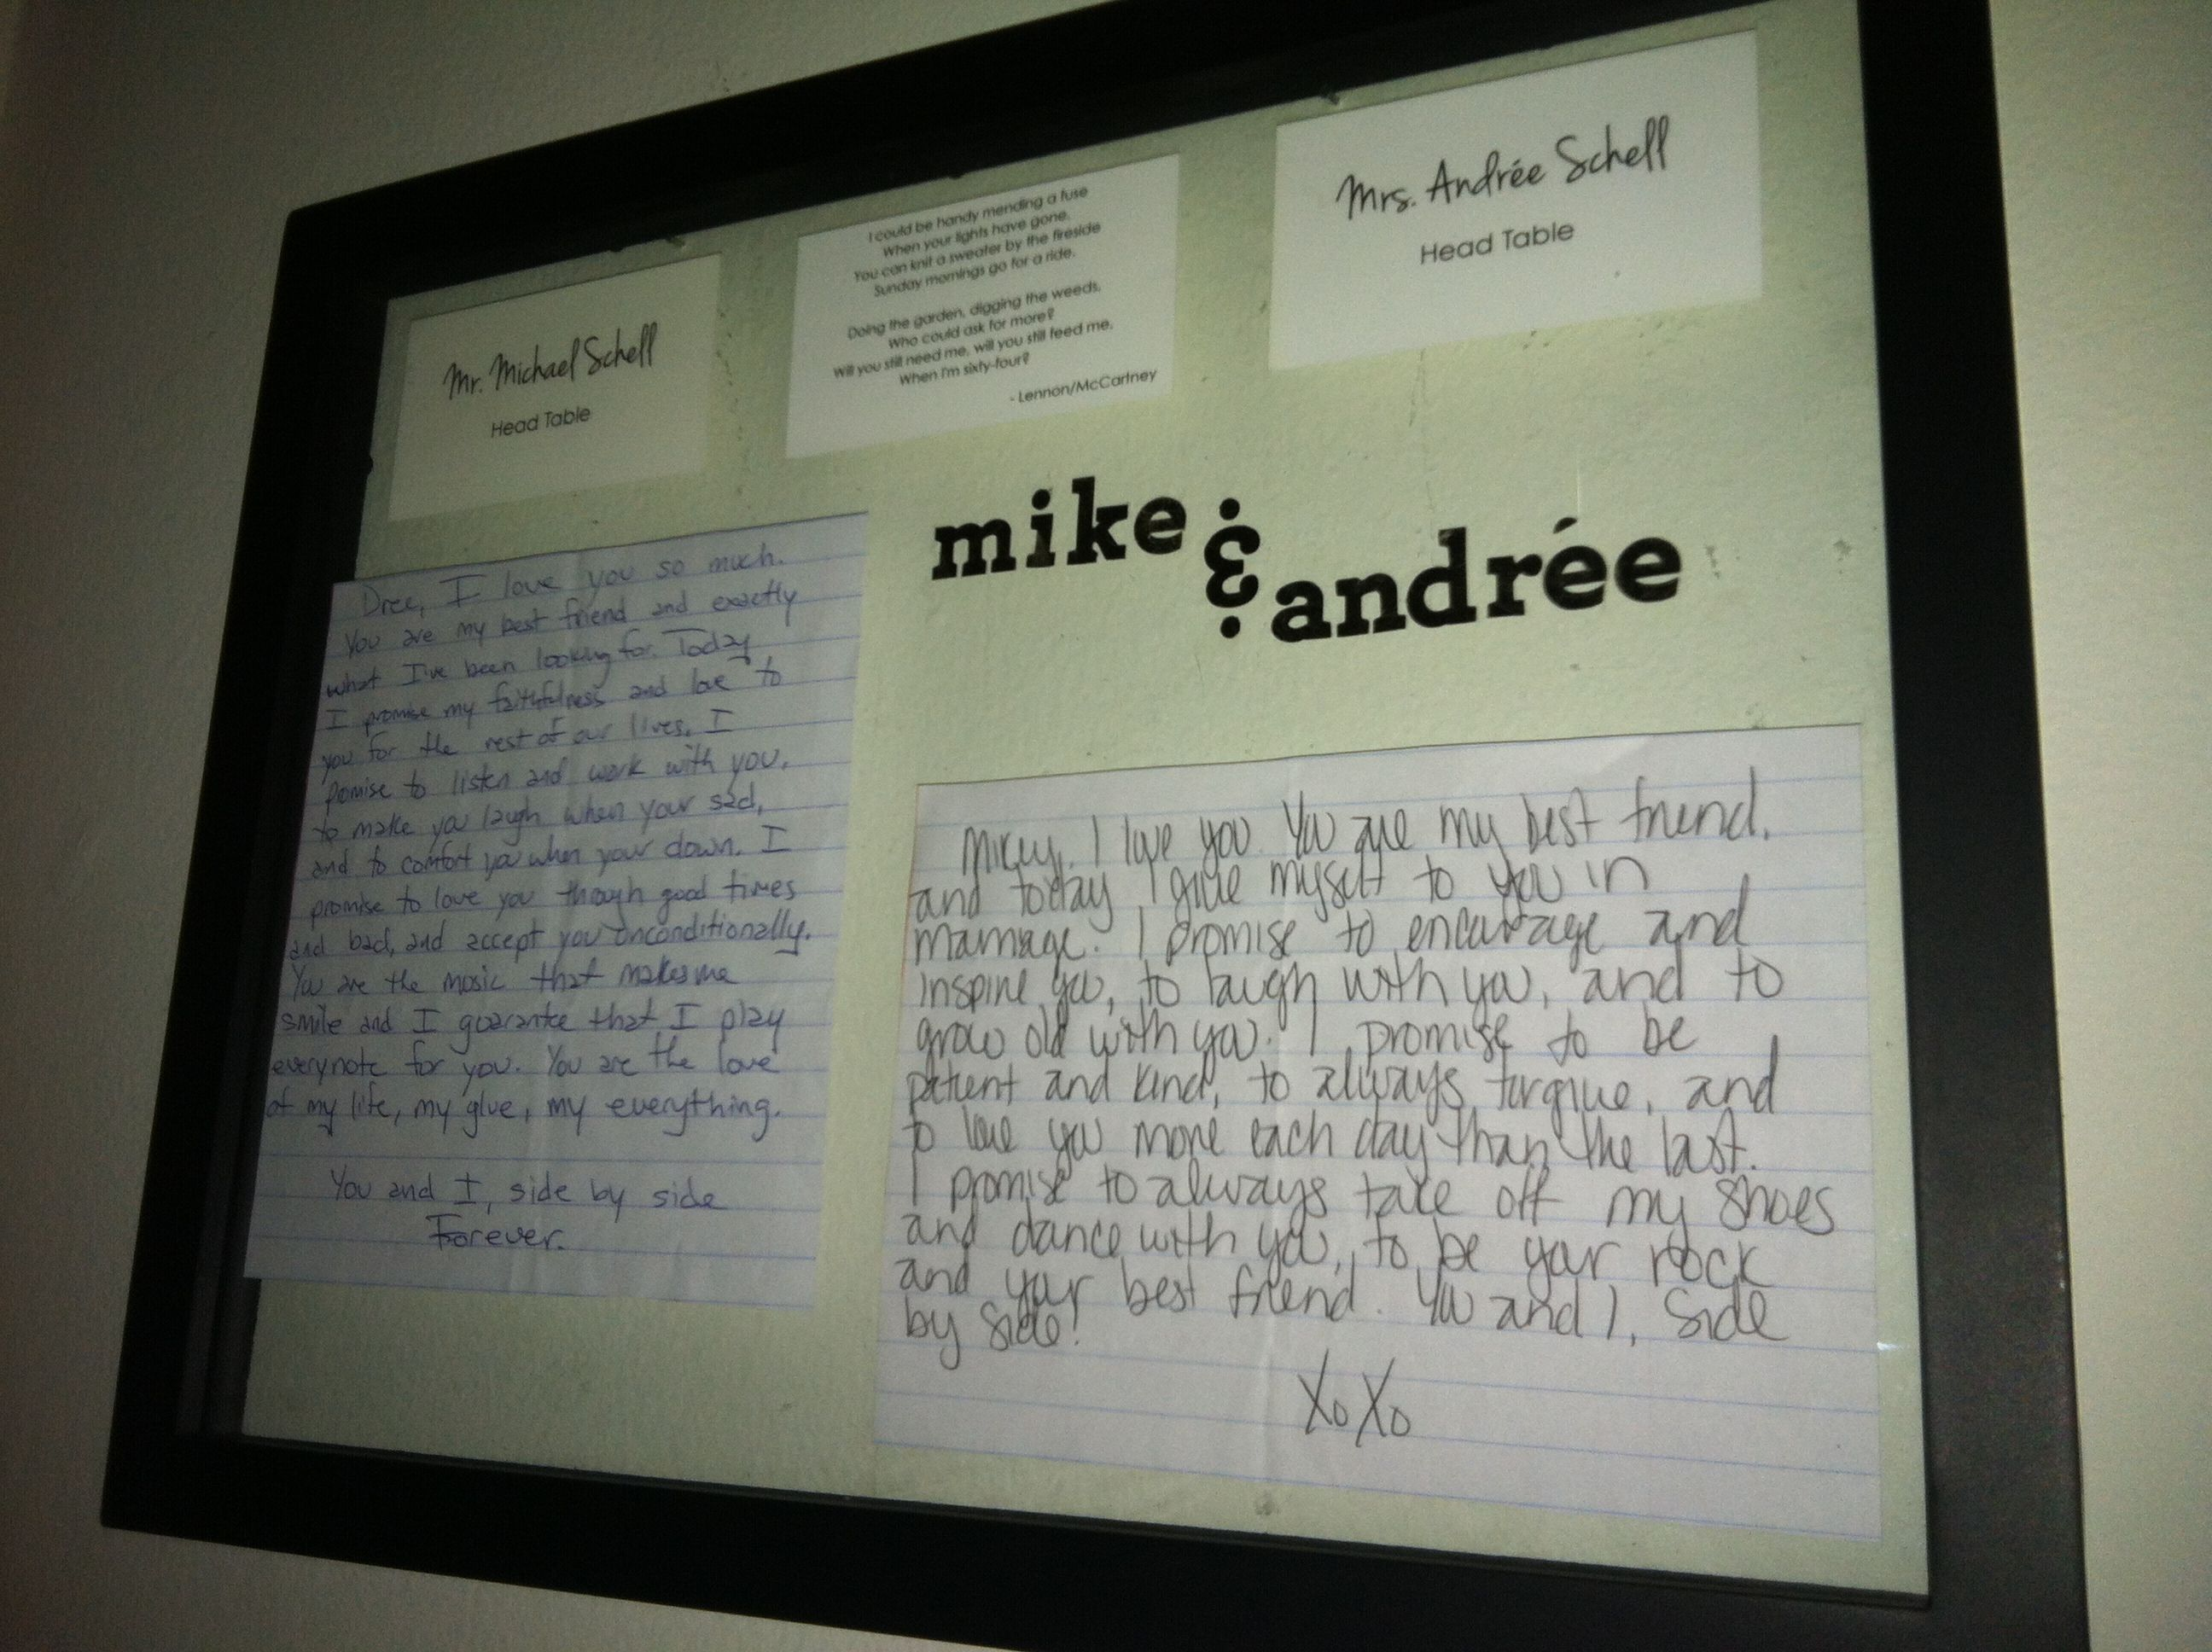 Wedding memories. Name cards, handwritten vows and some decorations in a shadow box frame.